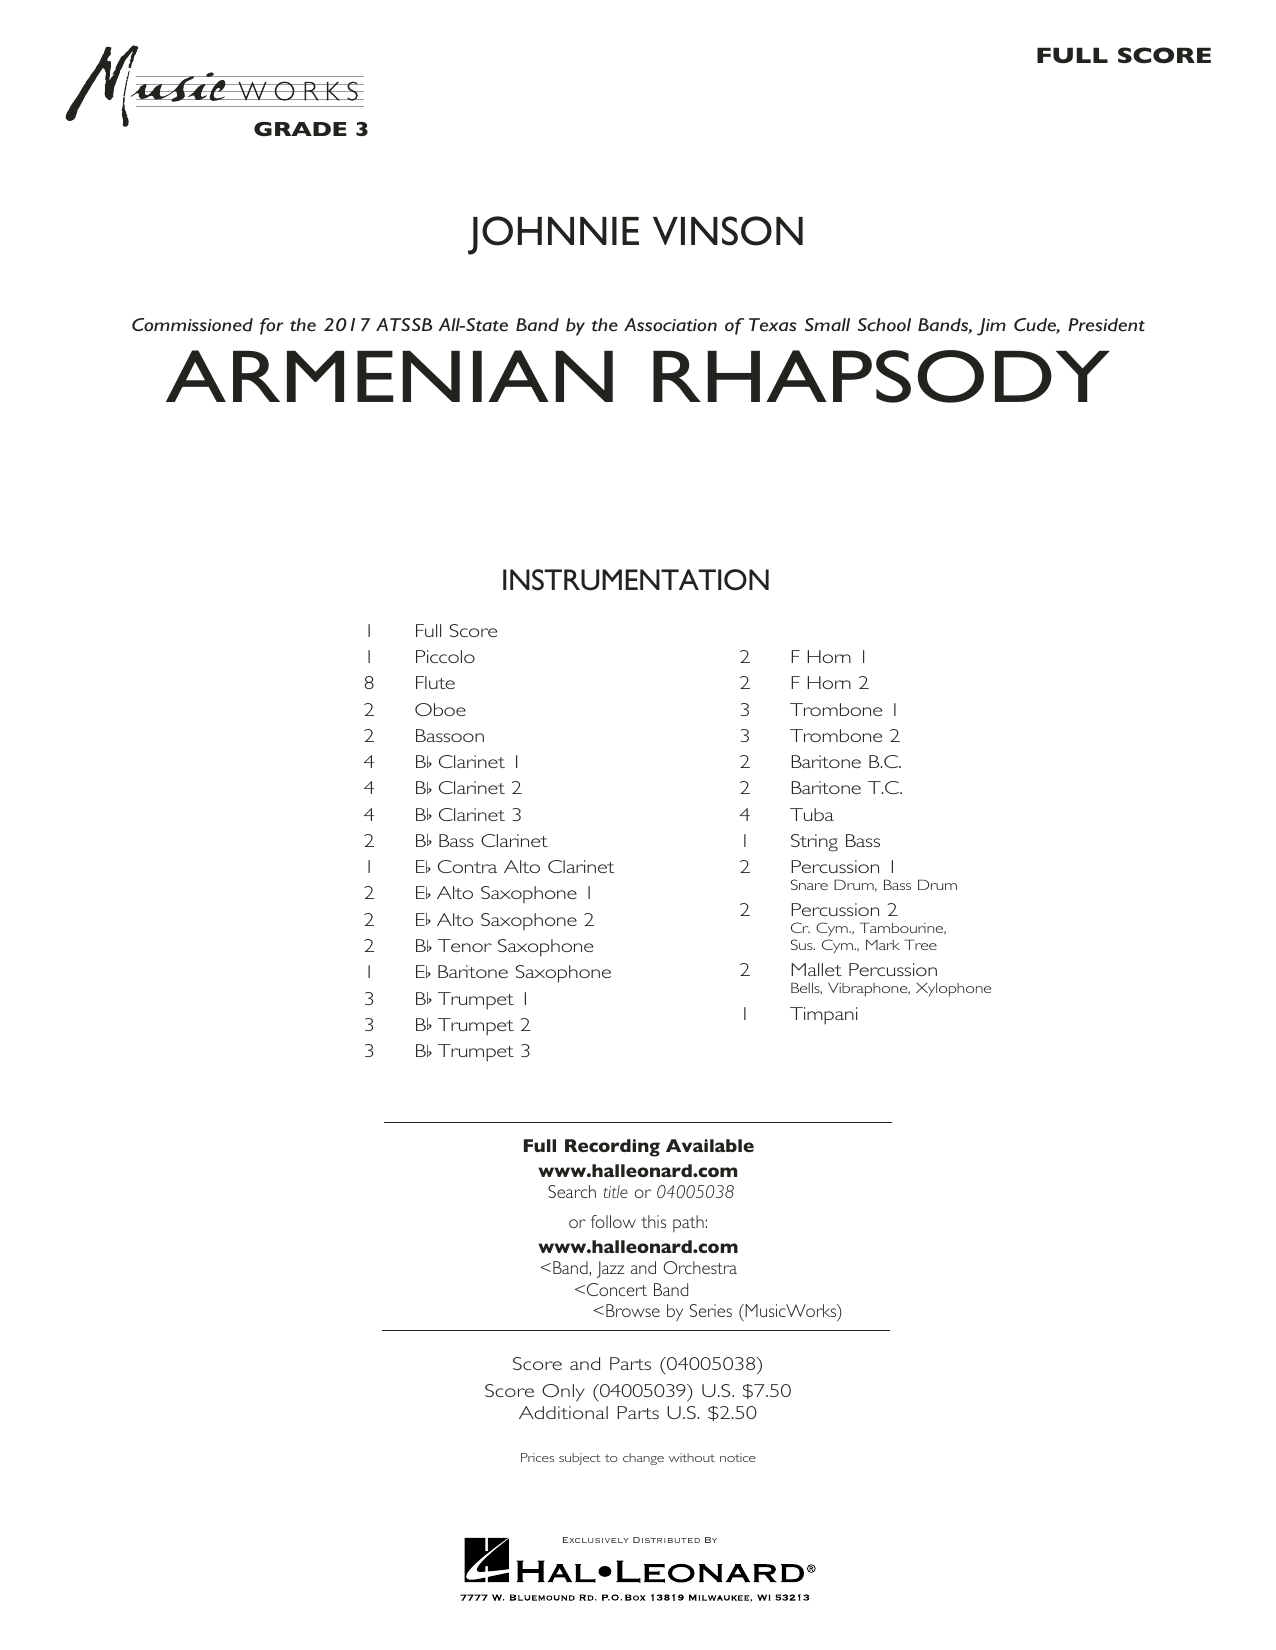 Johnnie Vinson Armenian Rhapsody - Conductor Score (Full Score) sheet music notes and chords. Download Printable PDF.